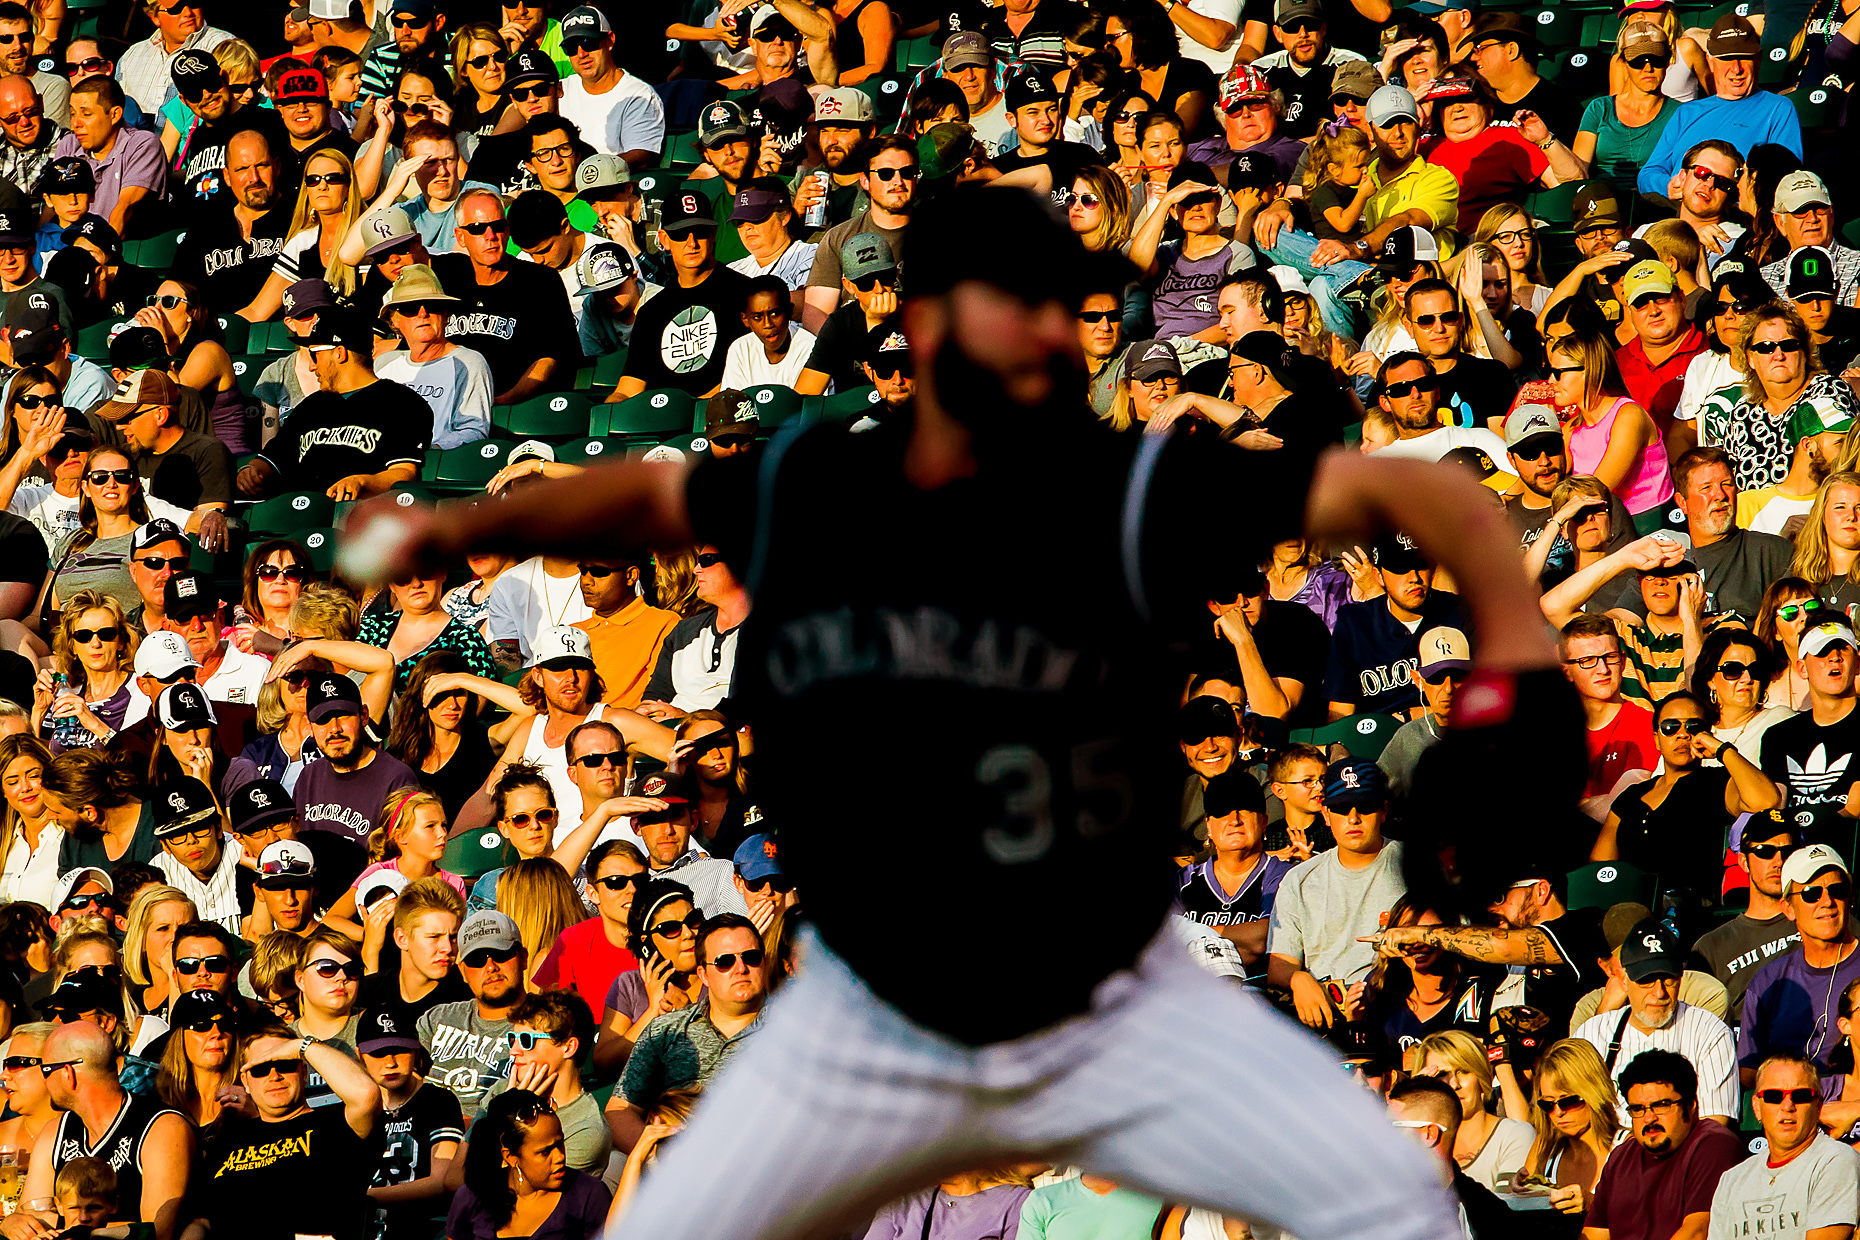 chip litherland lock and land rockies sports photography denver 0006.JPG